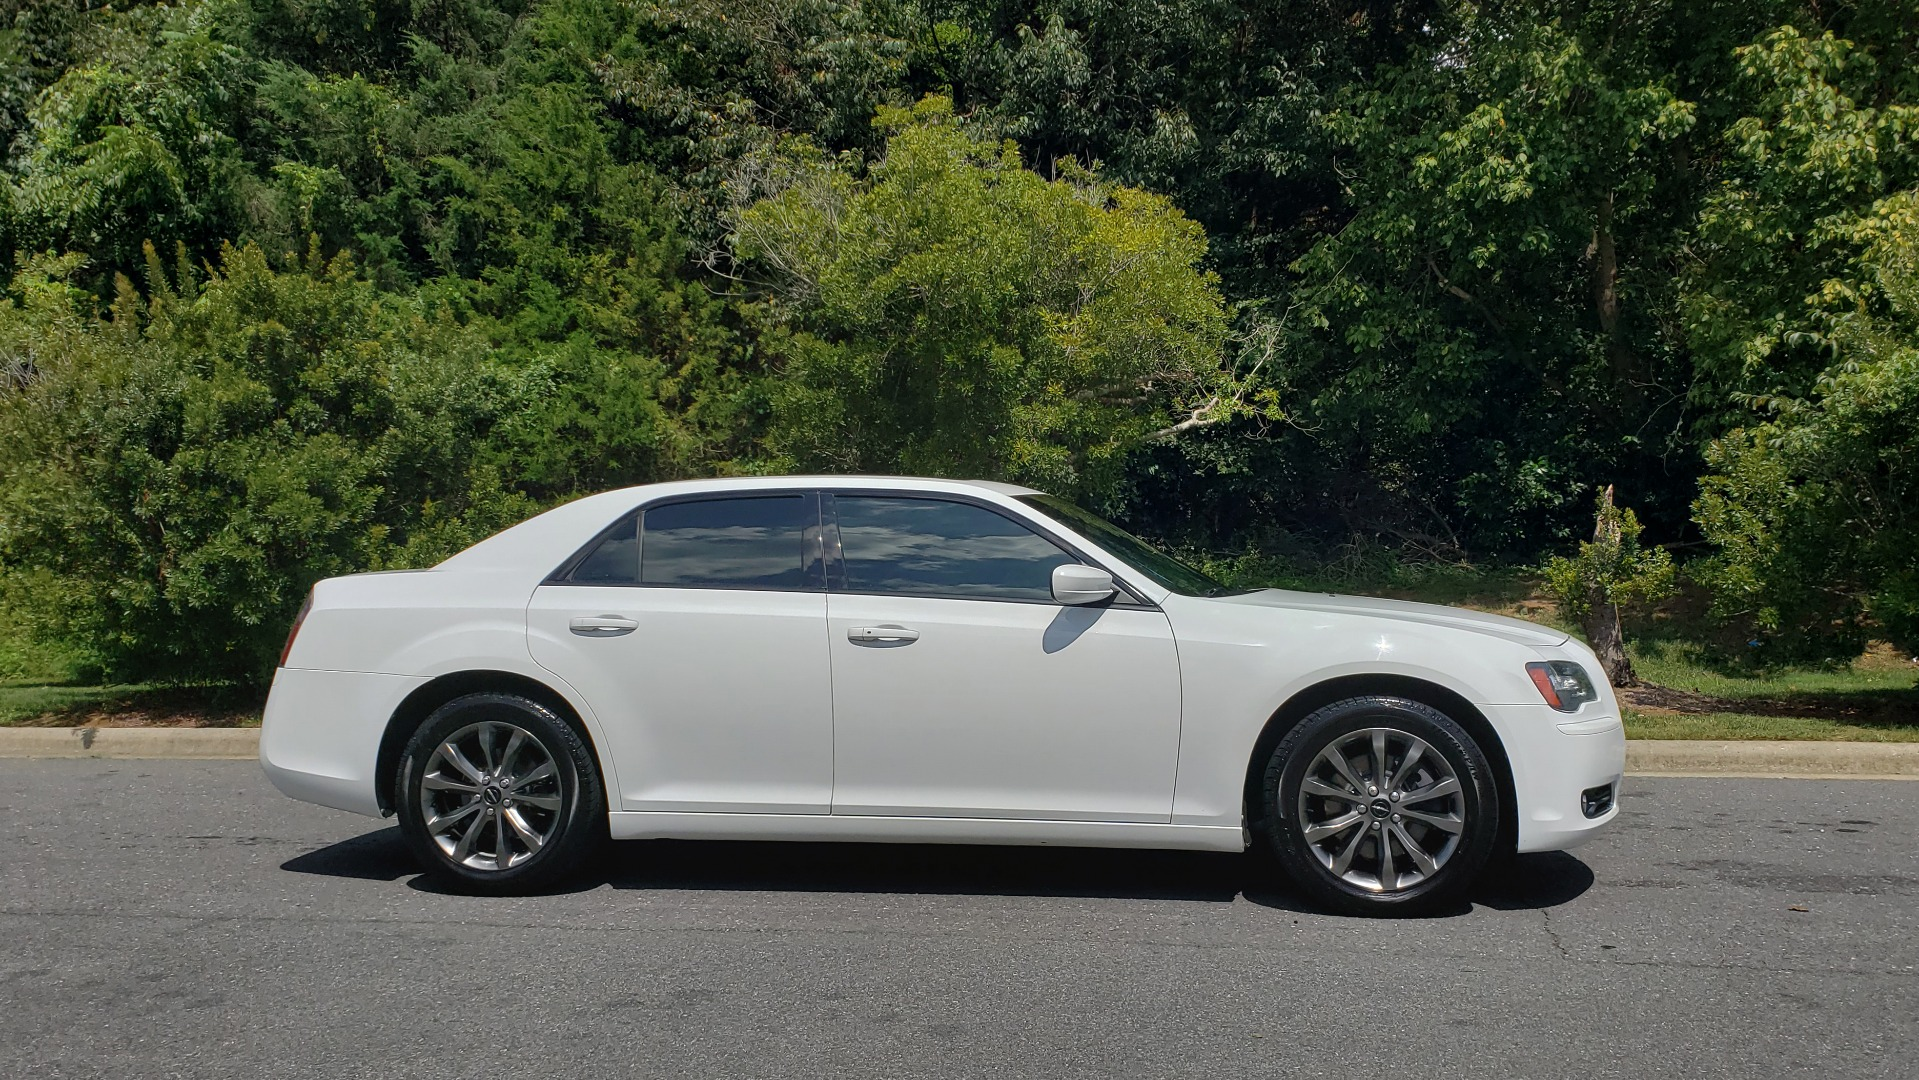 Used 2014 Chrysler 300 S / AWD / NAV / PANO-ROOF / HTD STS / BEATS SOUND / REARVIEW for sale Sold at Formula Imports in Charlotte NC 28227 5